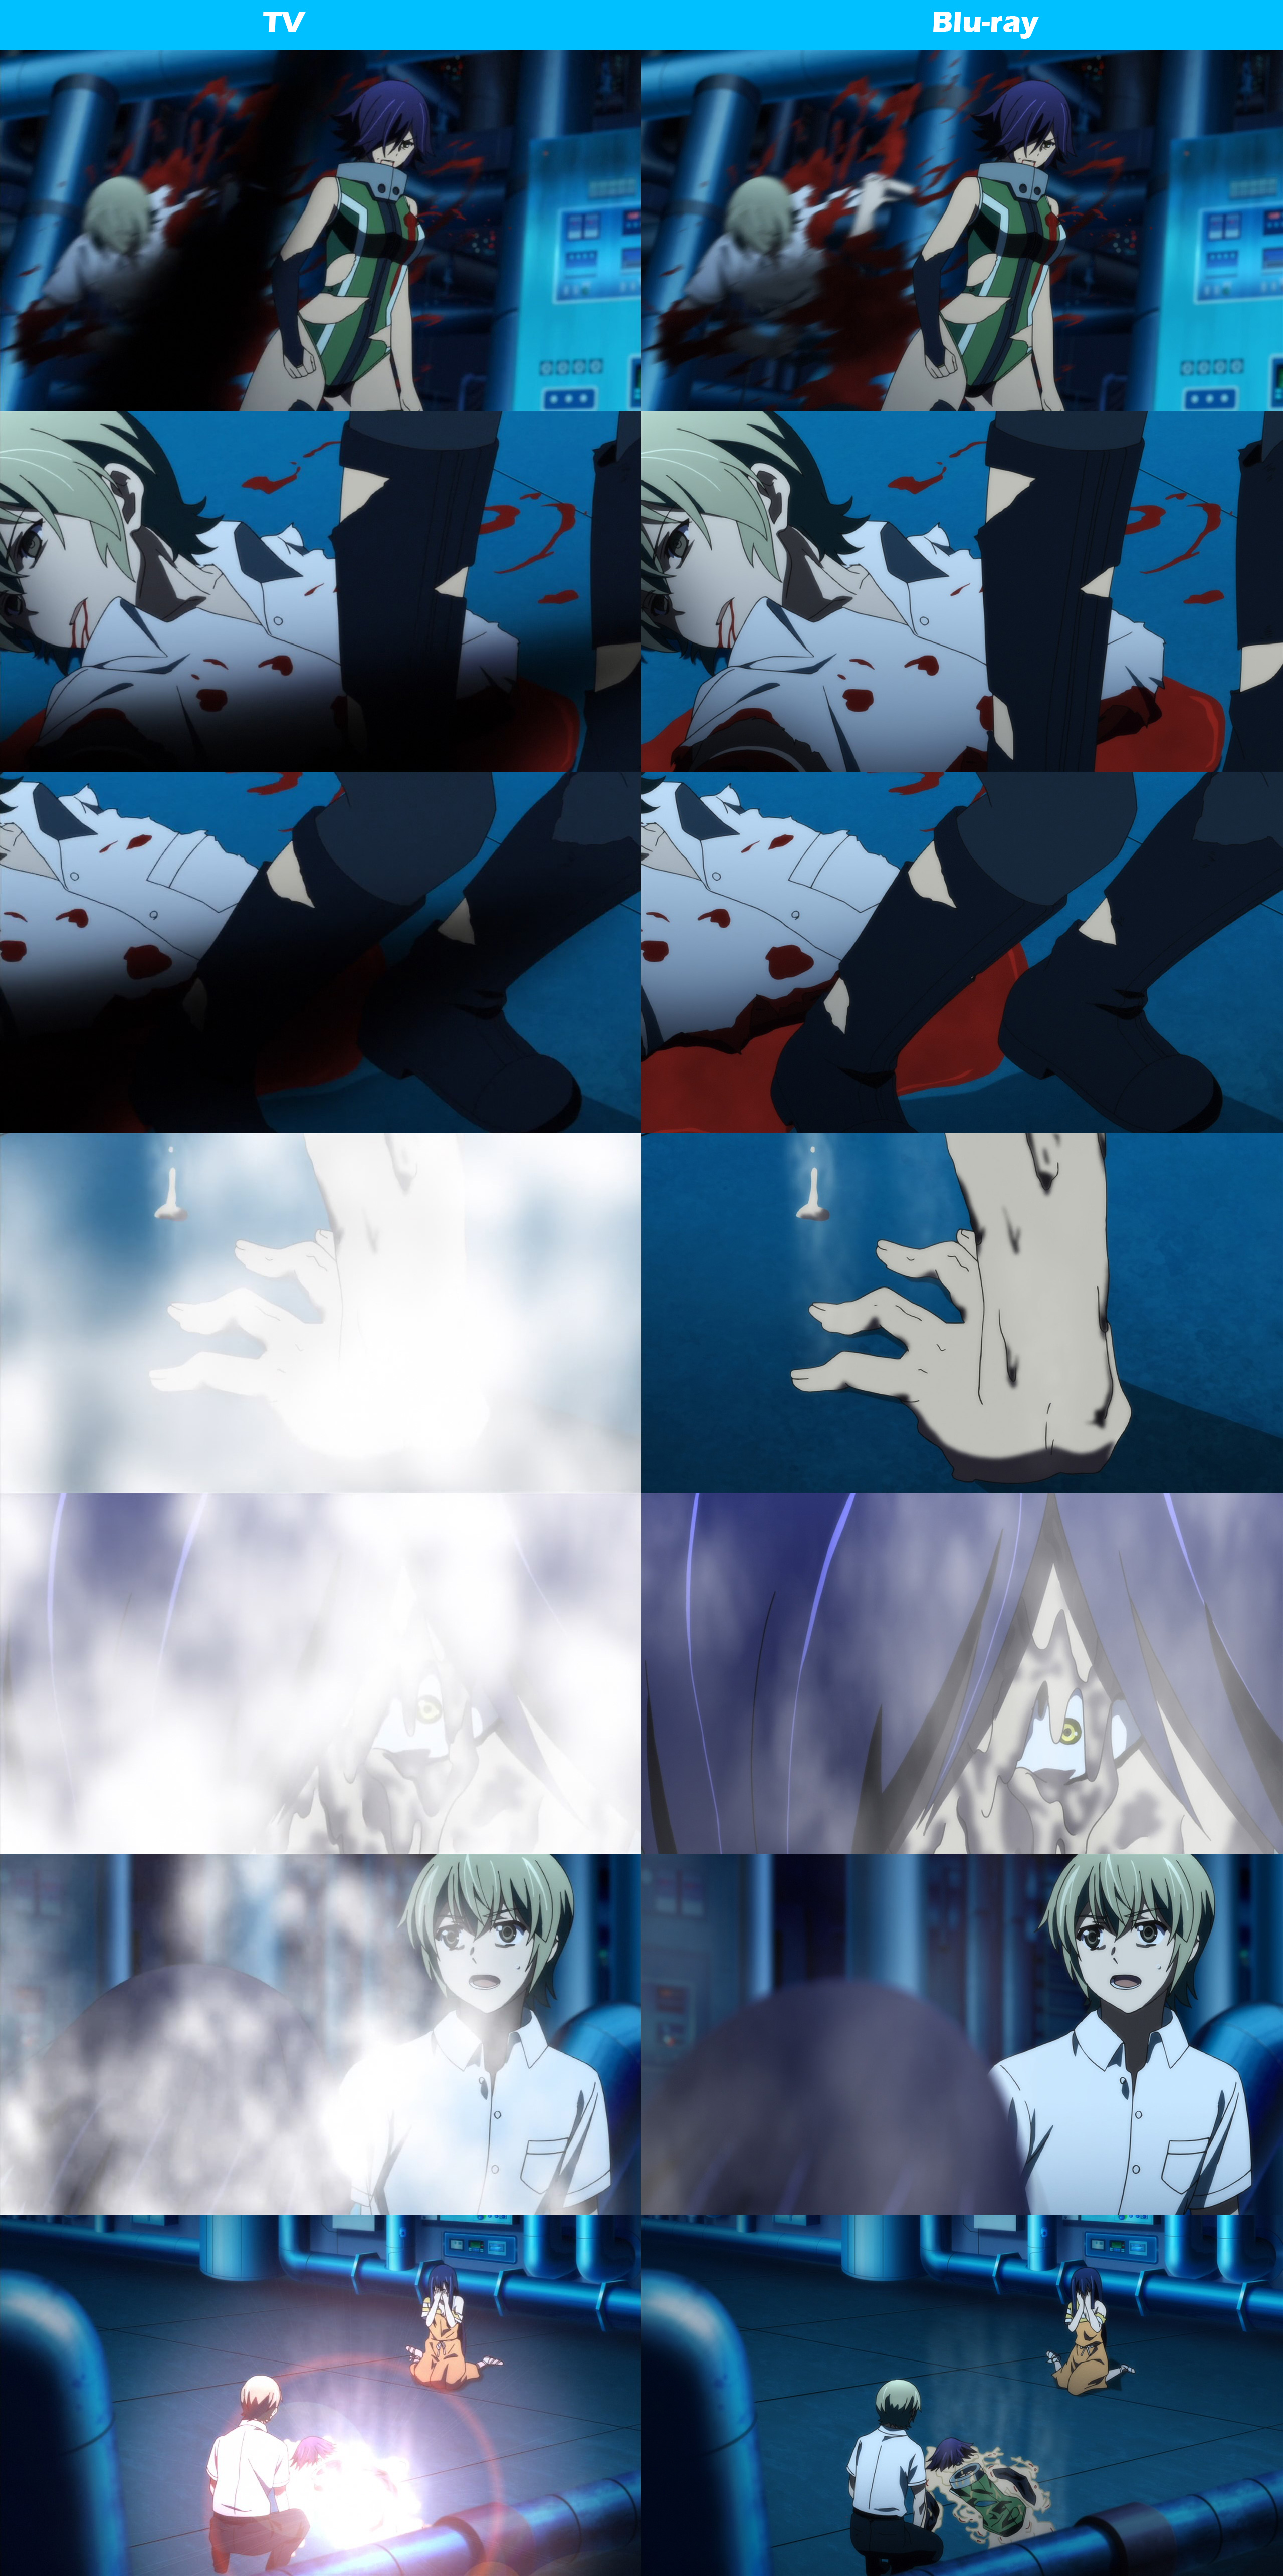 Gokukoku-no-Brynhildr-TV-and-Blu-ray-Comparisons-Gore-2